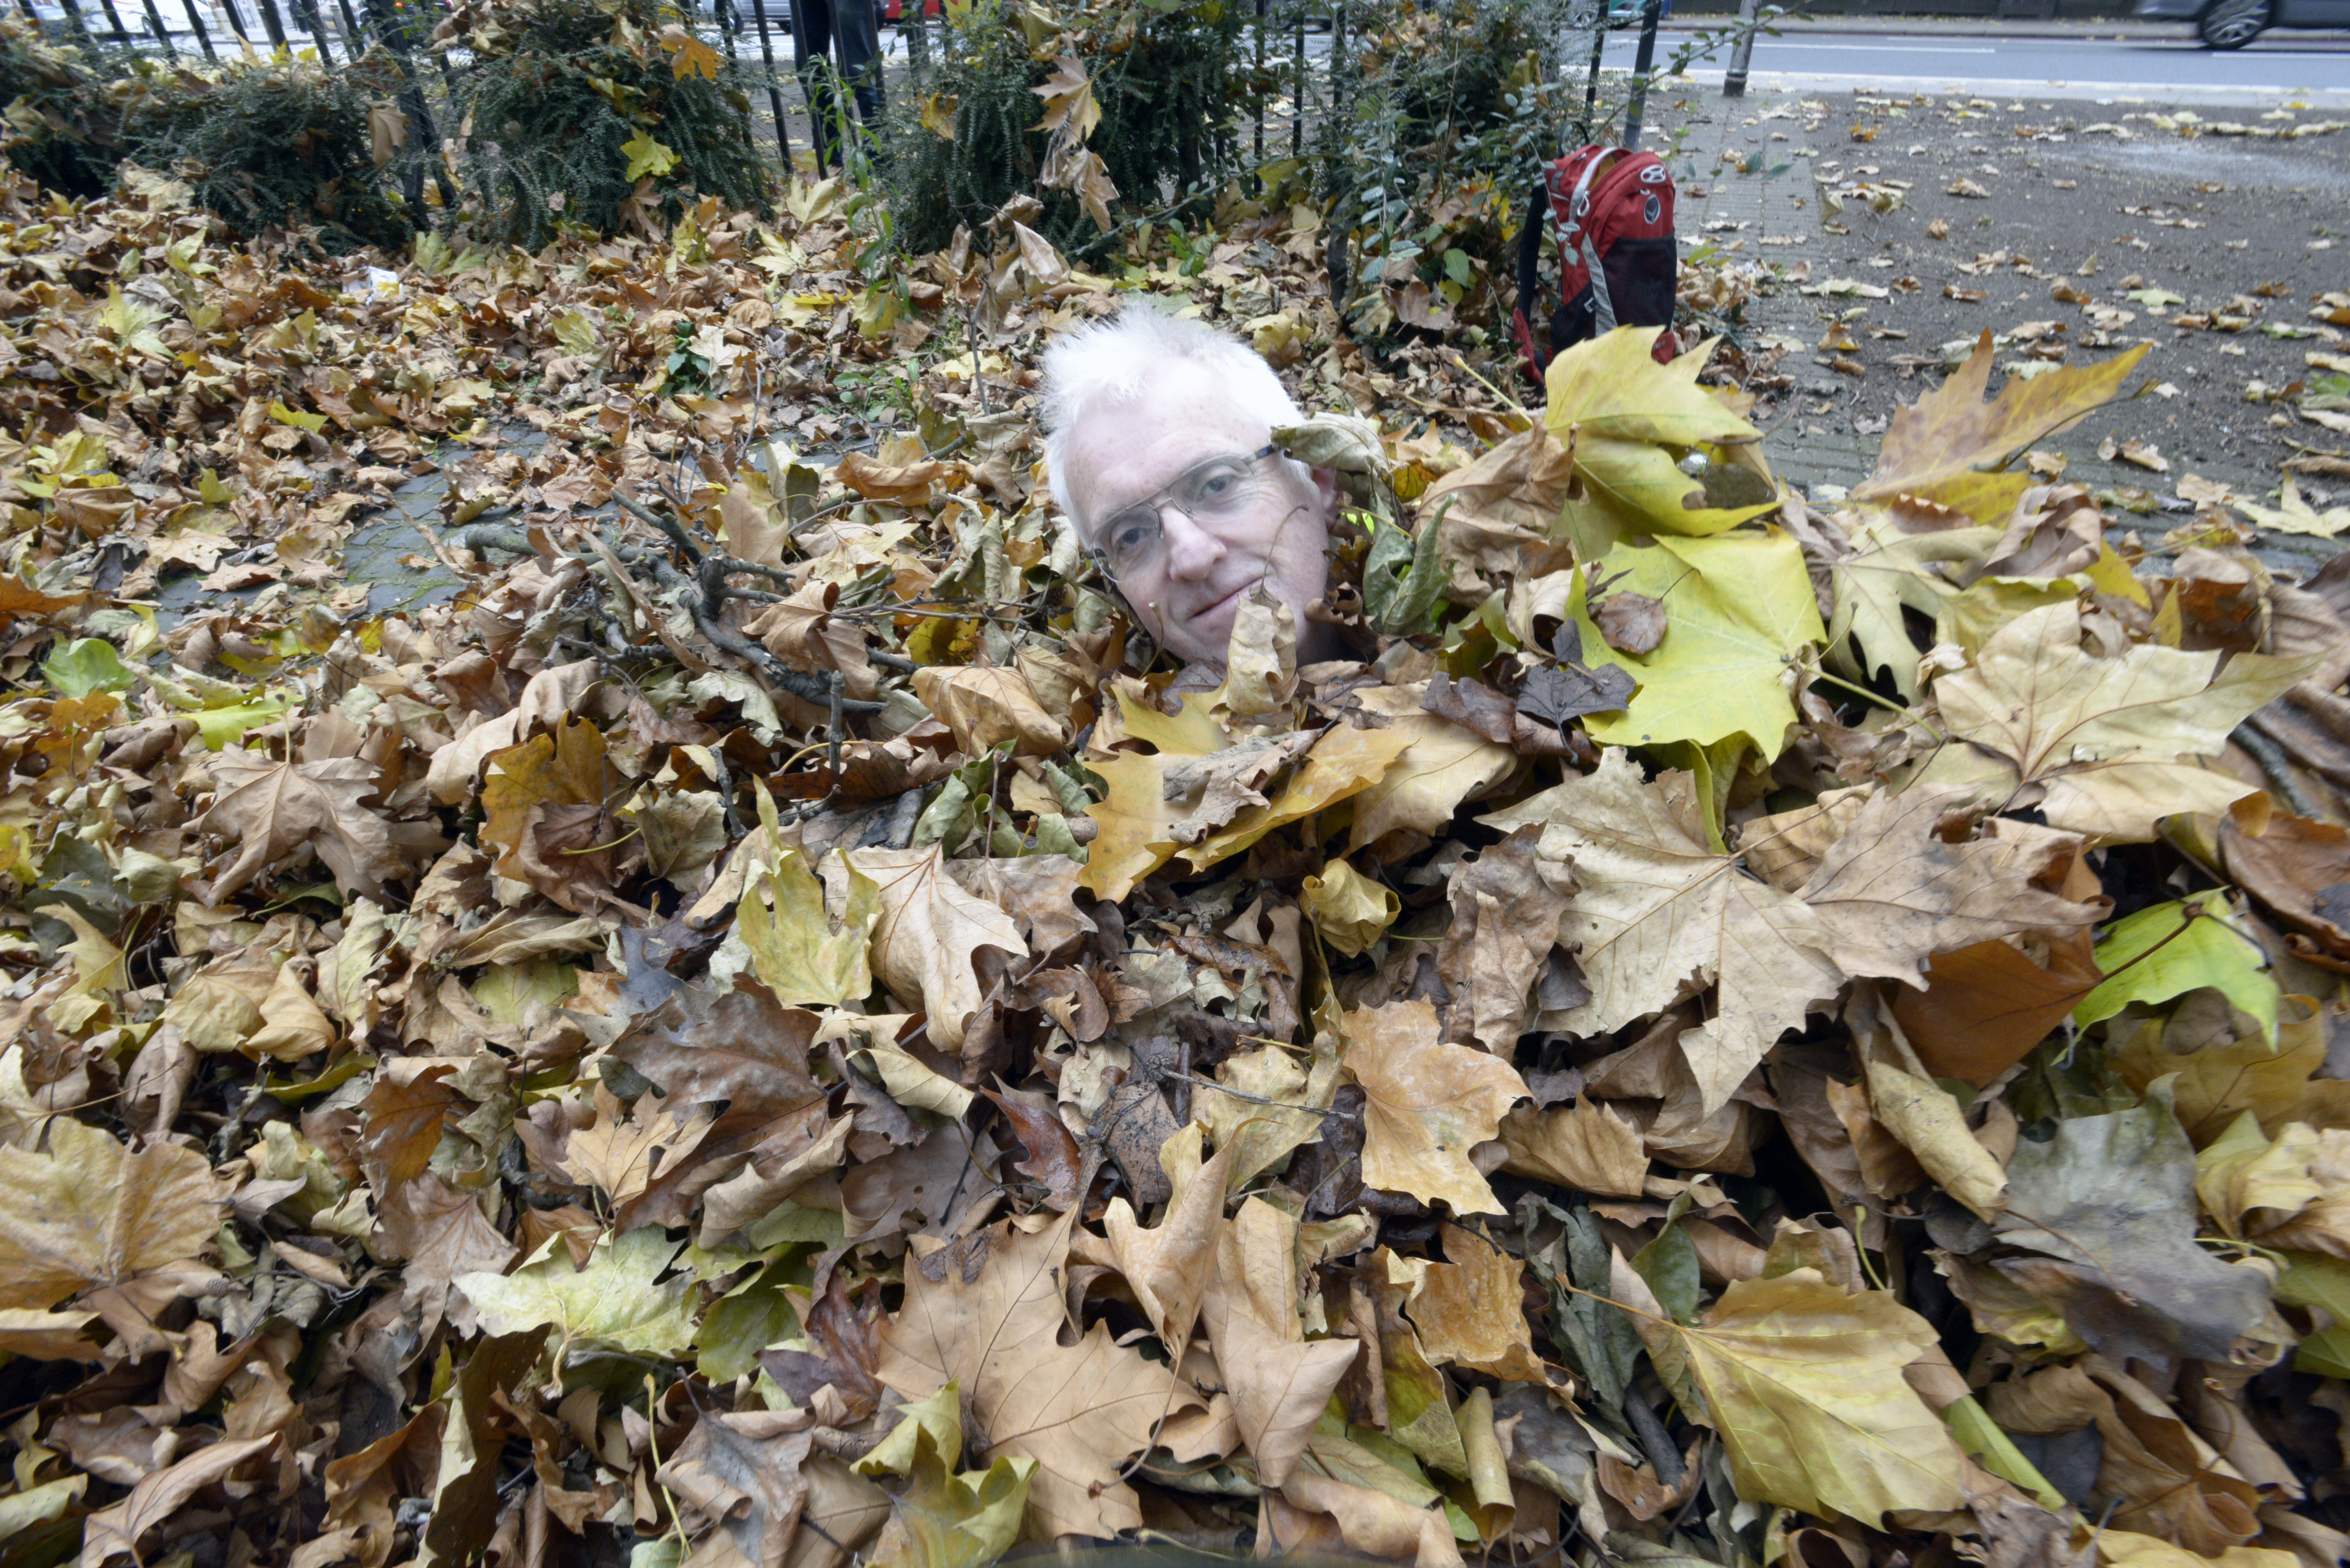 The disembodied head of Pete Waterman at Kennington Triangle, from the Oval Partnership website